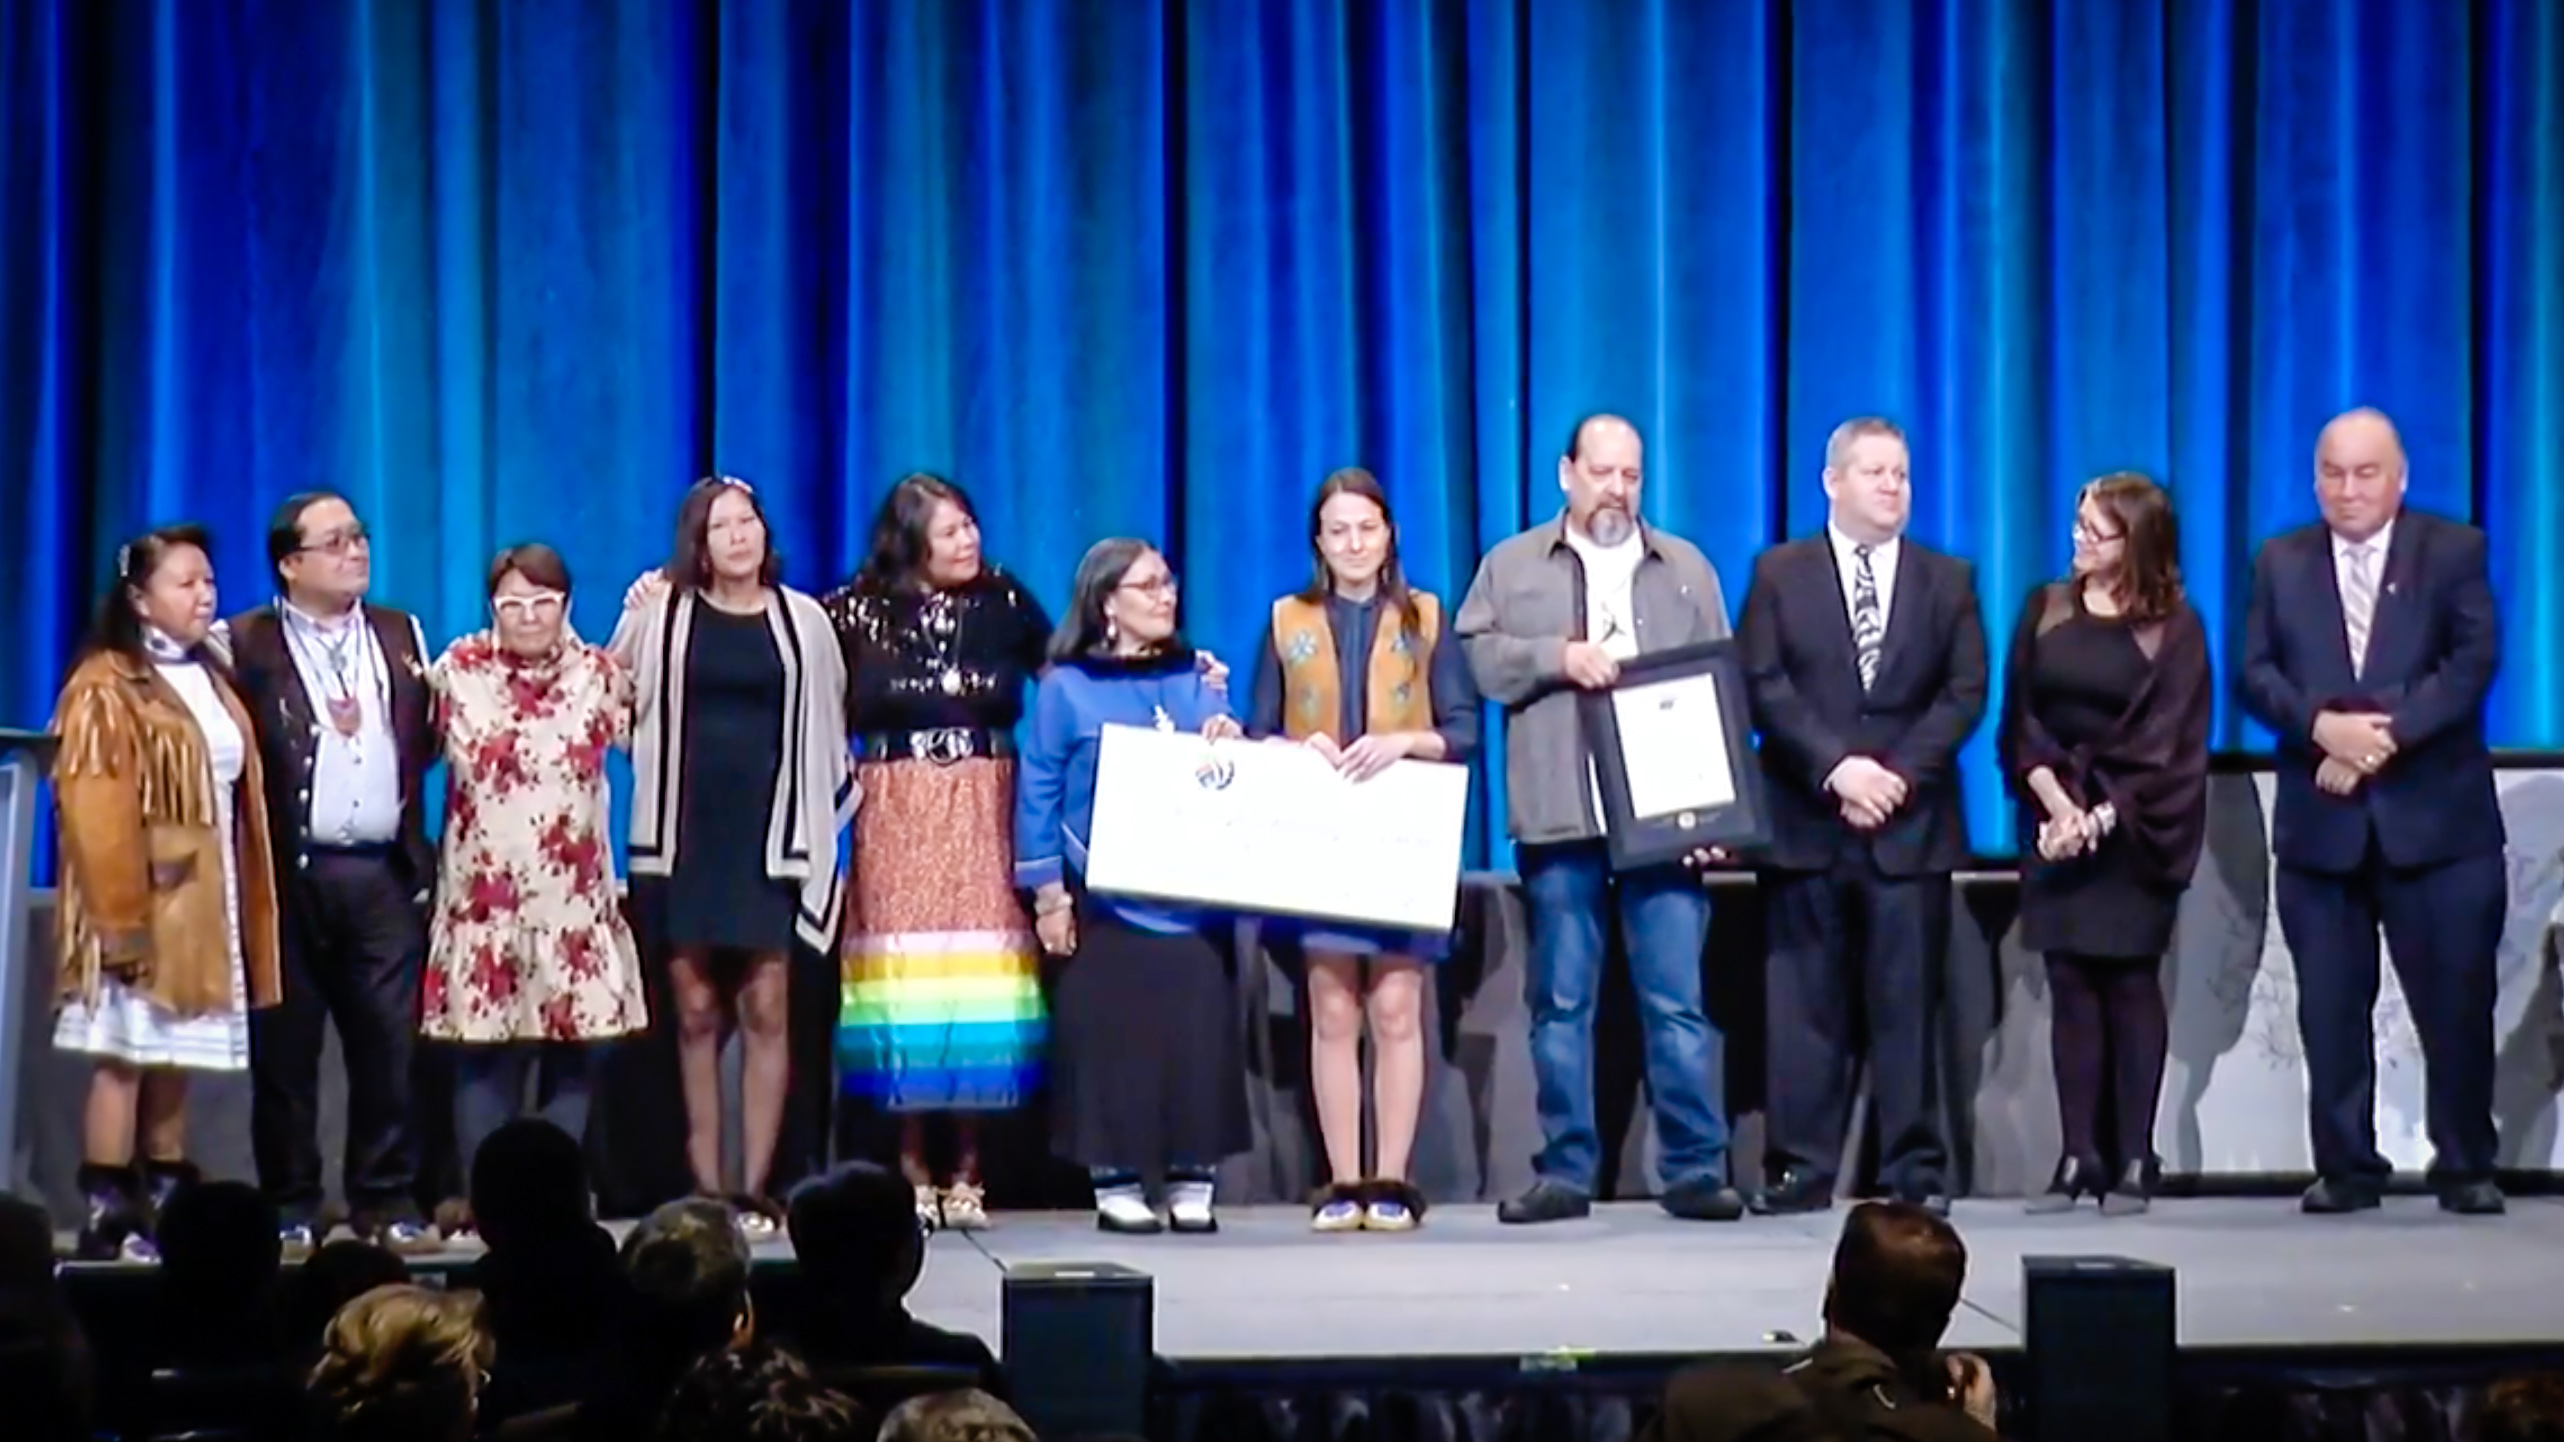 Members of the Arctic Indigenous Wellness Project accept their $1 million Arctic Inspiration Prize in Ottawa on January 31, 2018, alongside Premier Bob McLeod and dignitaries